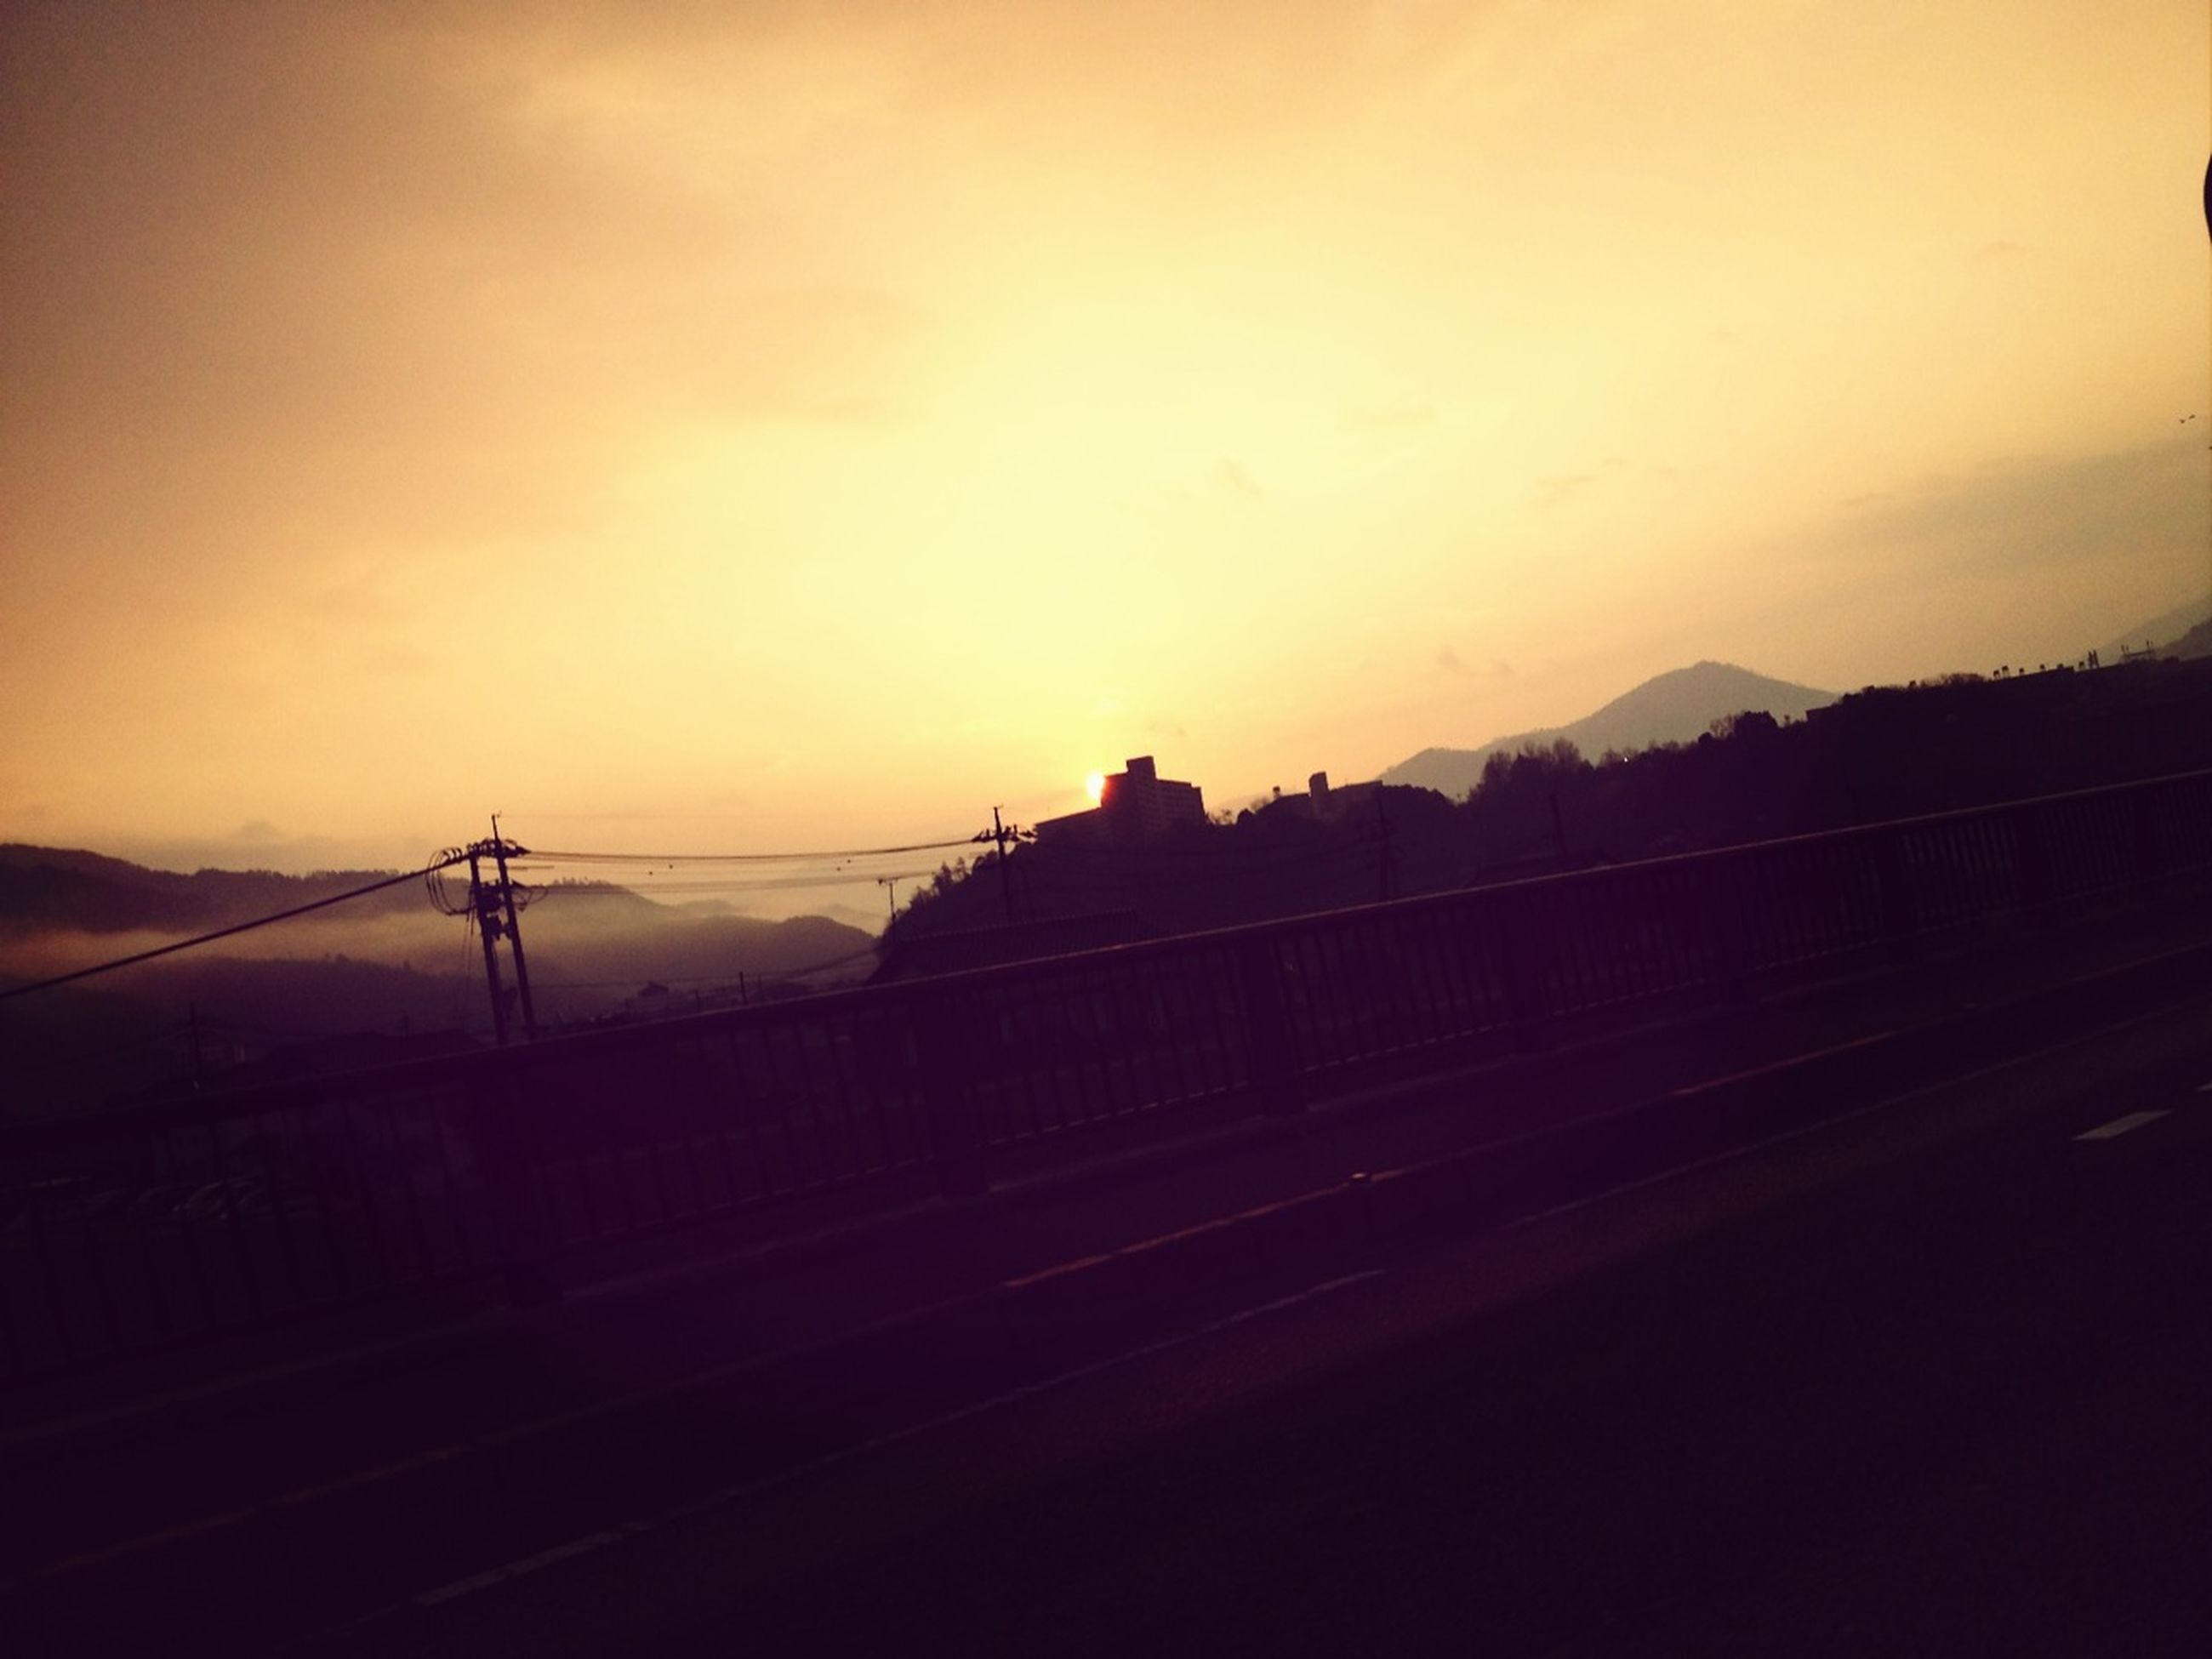 sunset, silhouette, sky, orange color, transportation, built structure, railing, dusk, connection, architecture, scenics, mountain, nature, beauty in nature, tranquility, dark, tranquil scene, outdoors, no people, cloud - sky